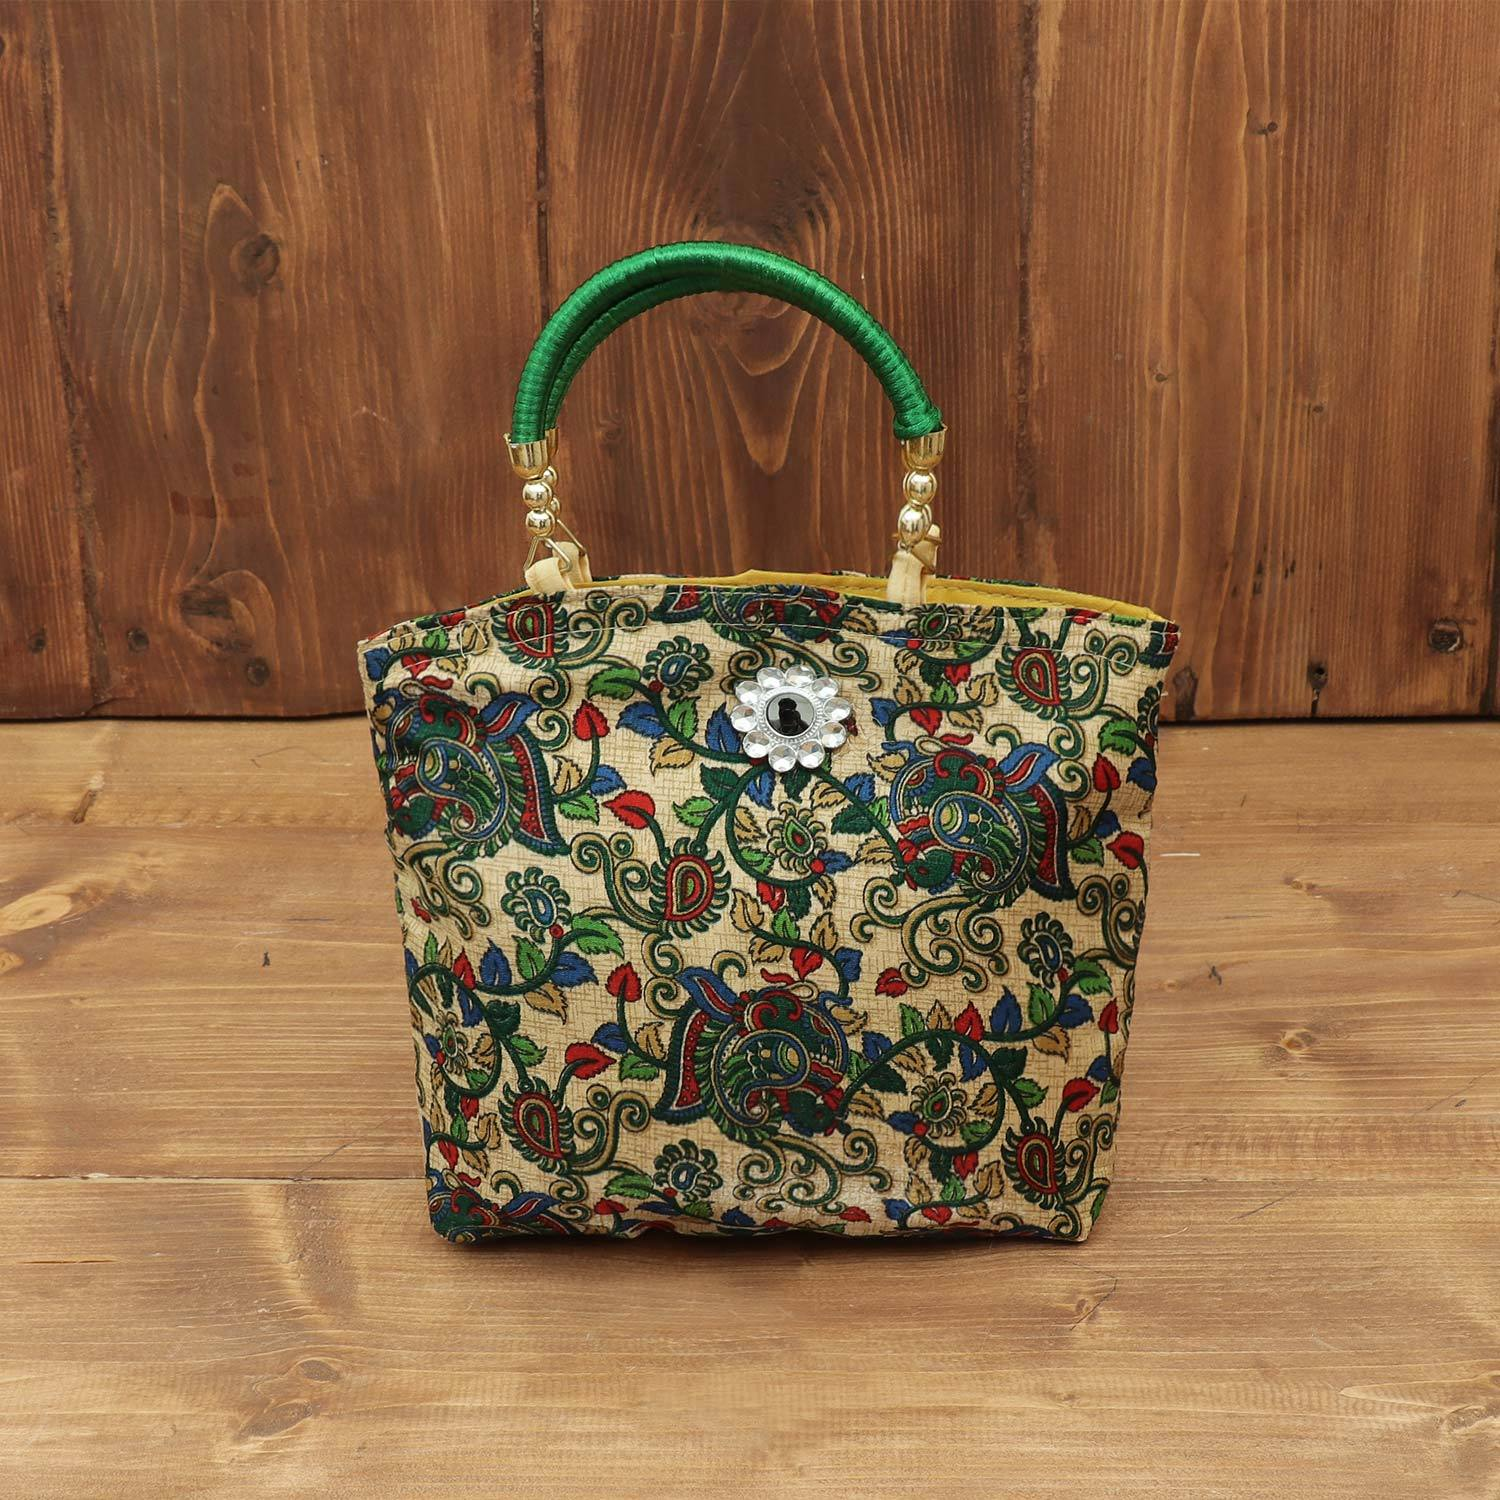 Hand bag with Floral Design return gift